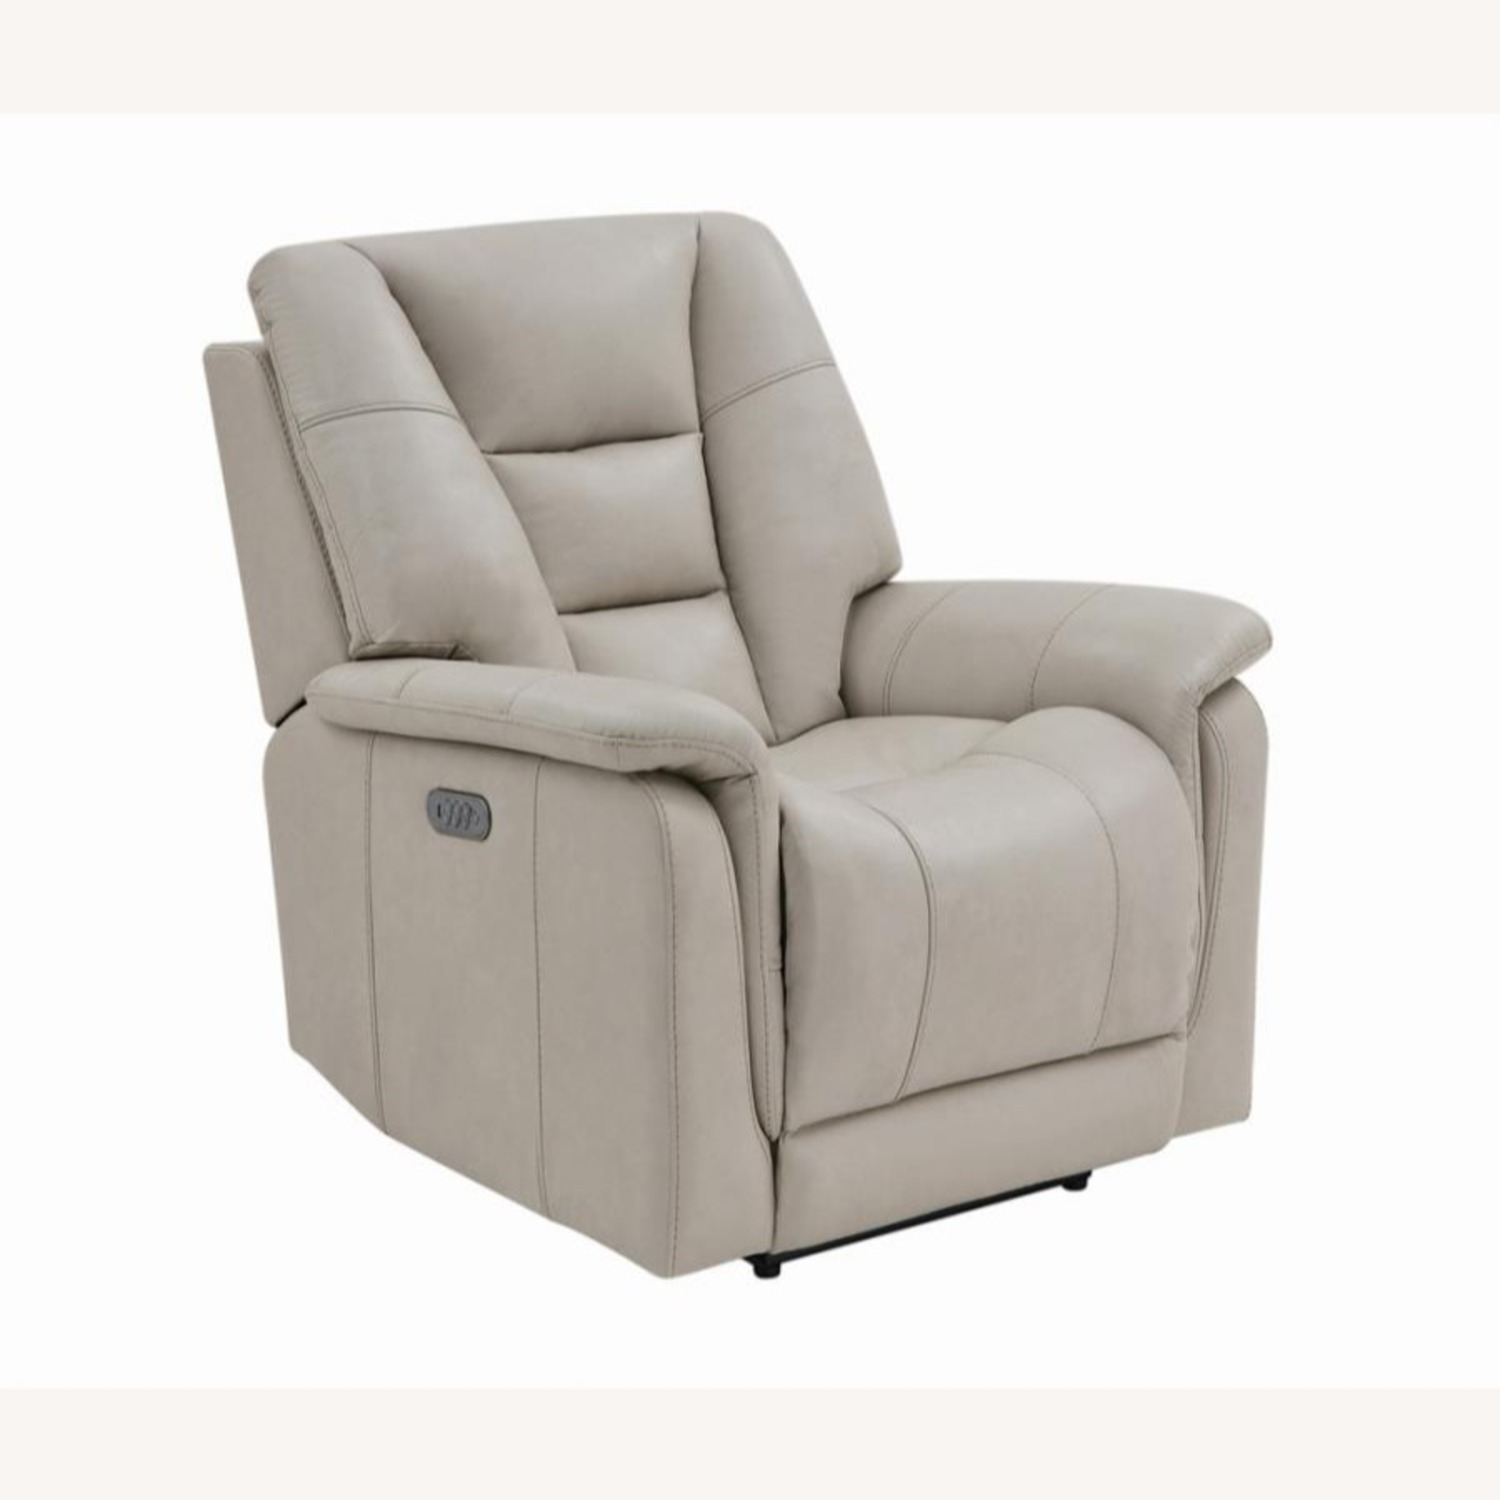 Power Recliner In Cream Top Grain Leather - image-0